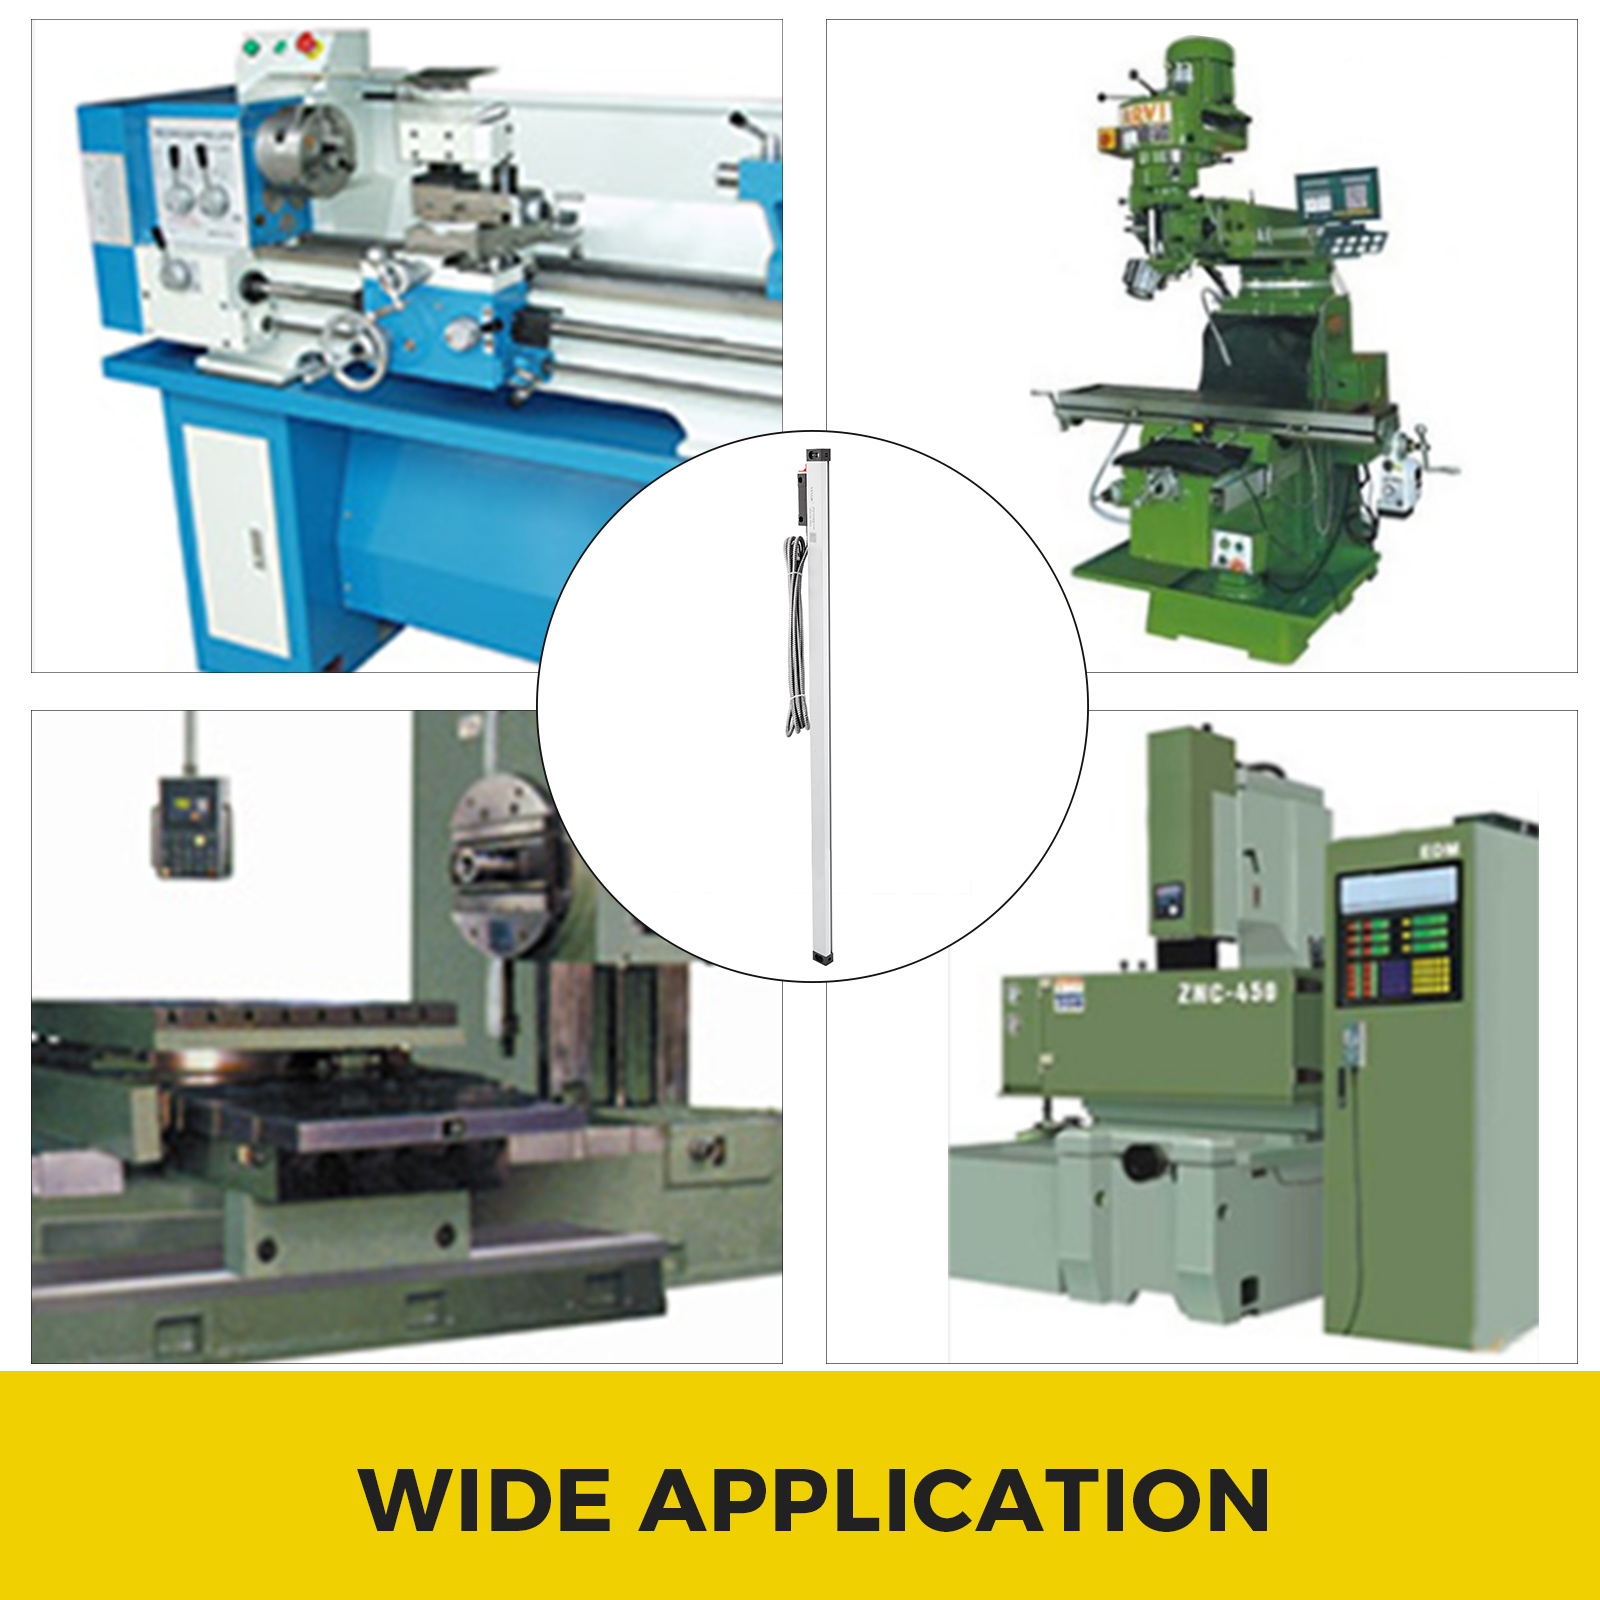 2-3-Axis-Digital-Readout-Linear-Scale-Double-Seal-5-Bearing-System-Grinding thumbnail 211